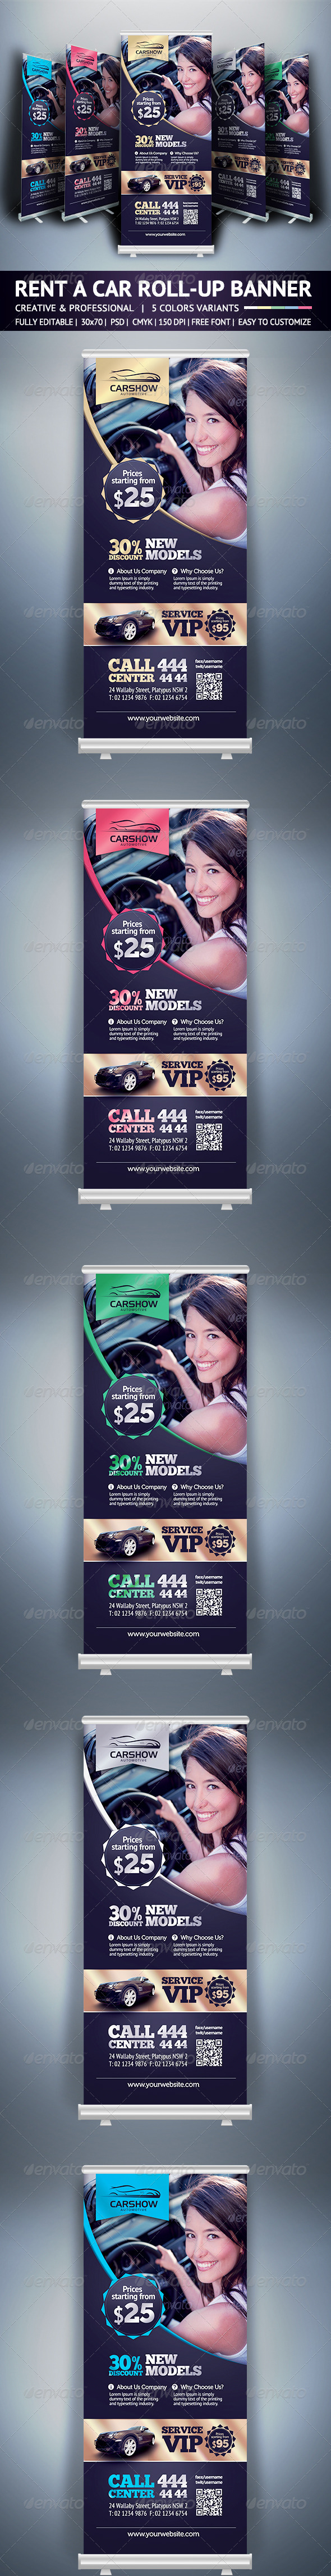 Rent A Car Roll Up Banner - Signage Print Templates